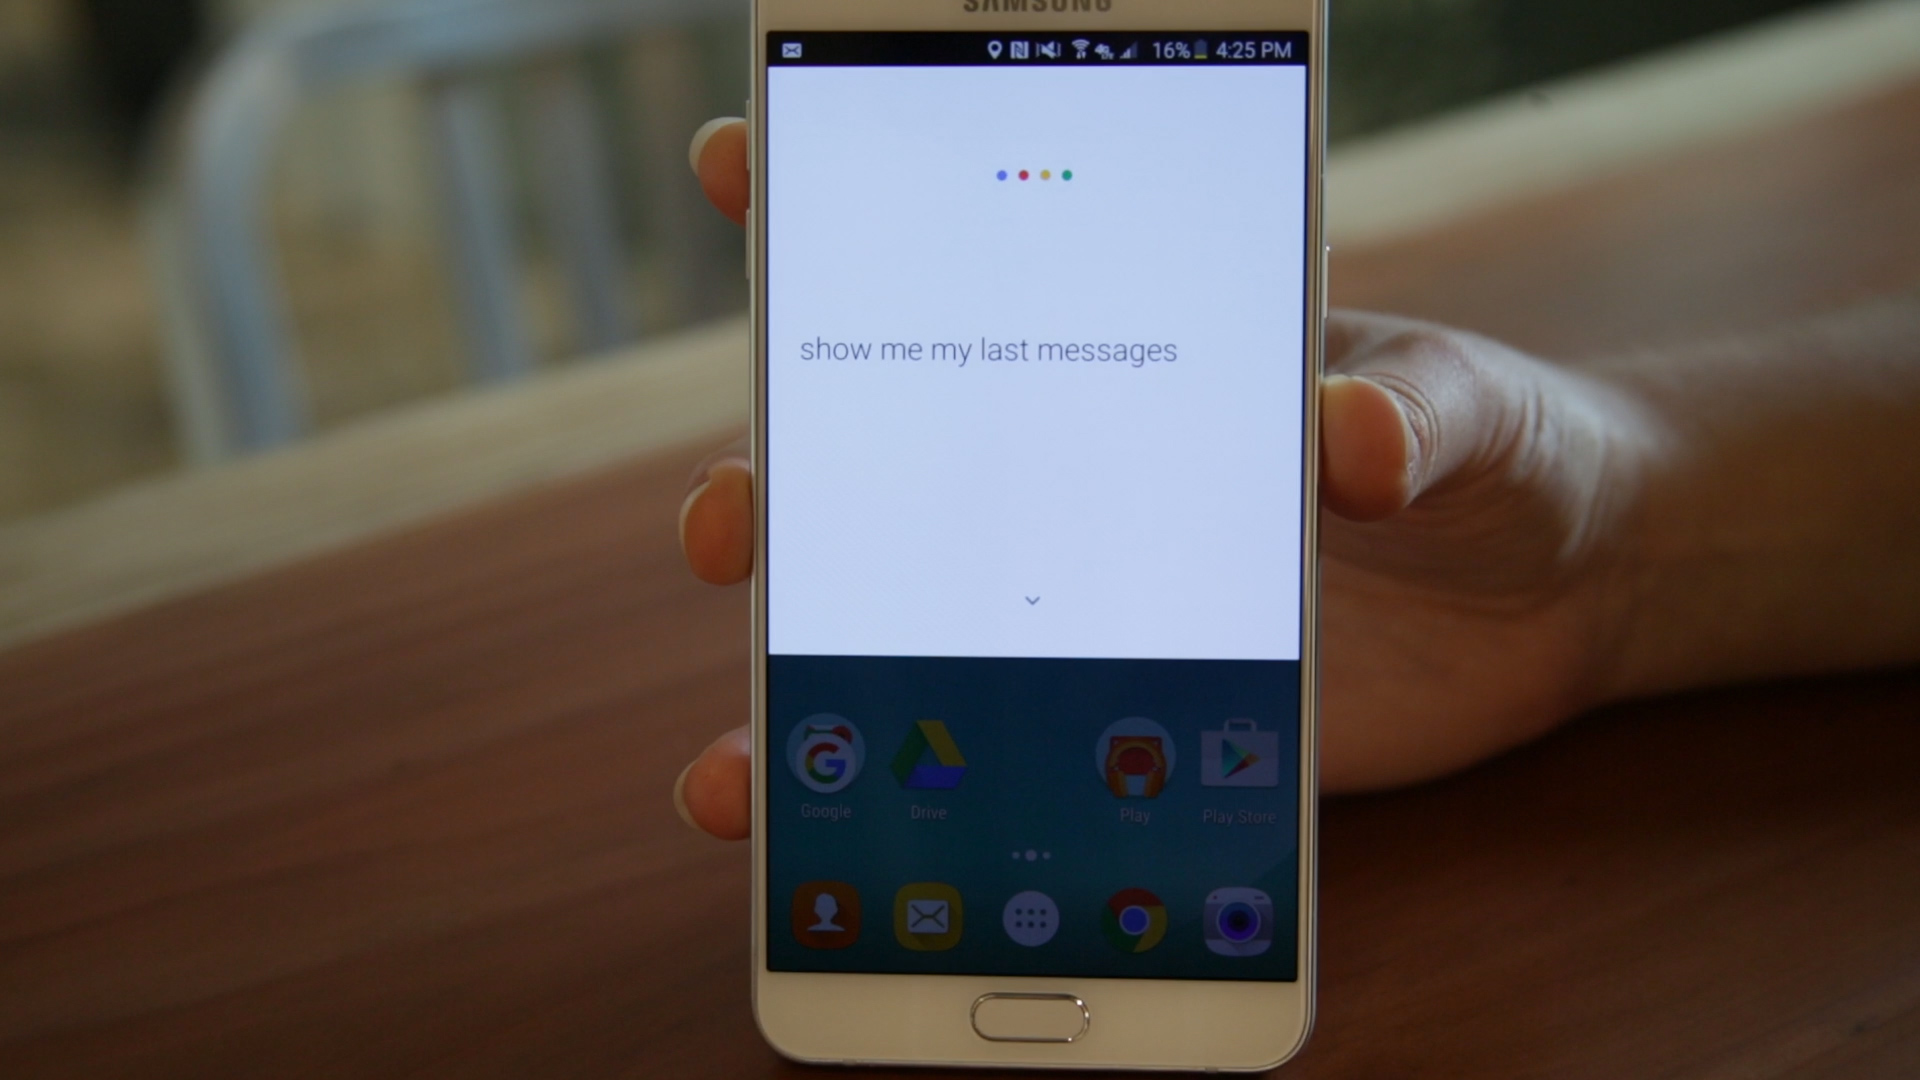 Read and Reply to Texts Using Siri or Google Now